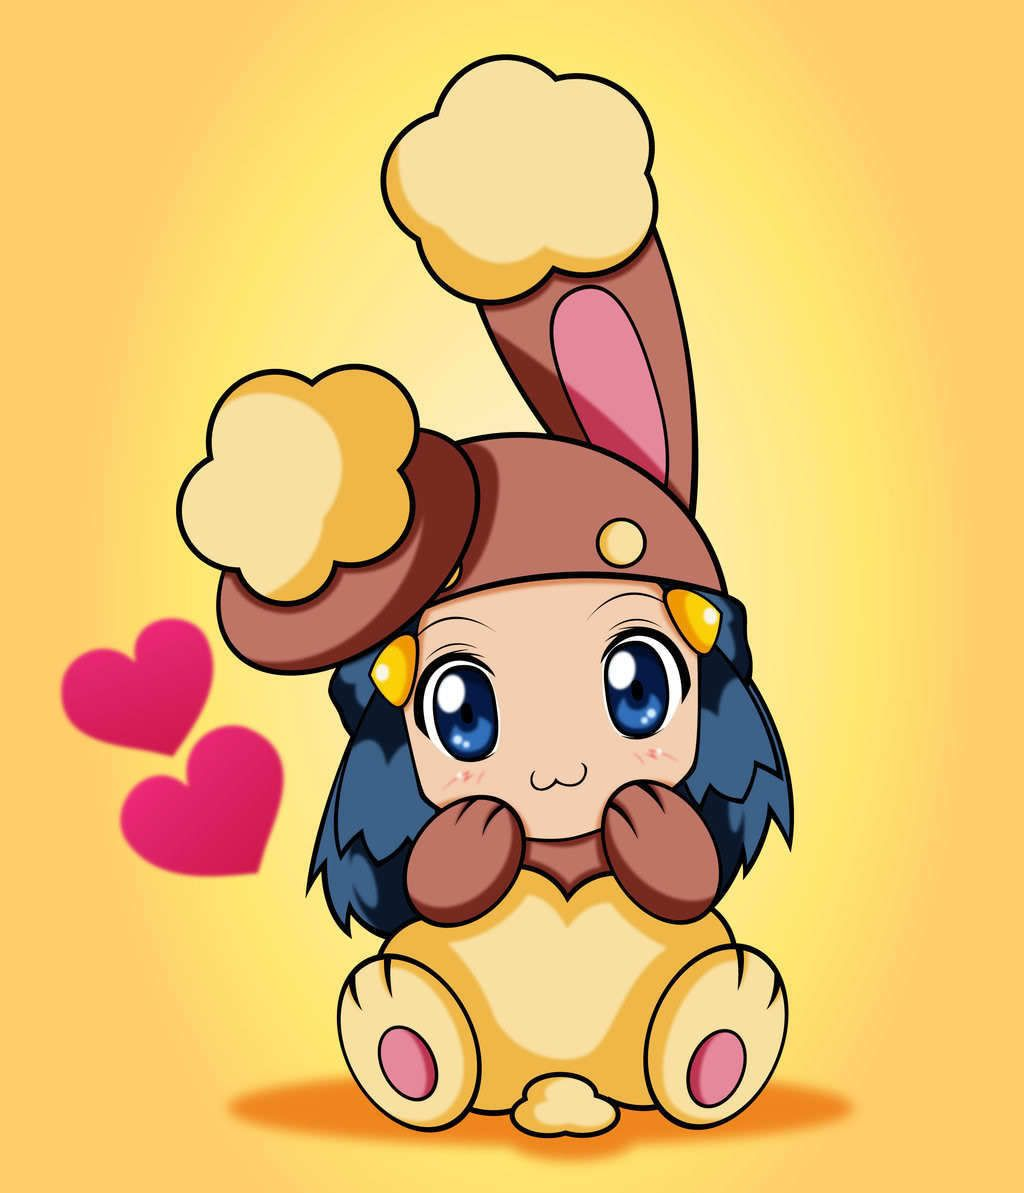 Dawn as Buneary | Pokemon | Pinterest | Dawn, Pokémon and Anime